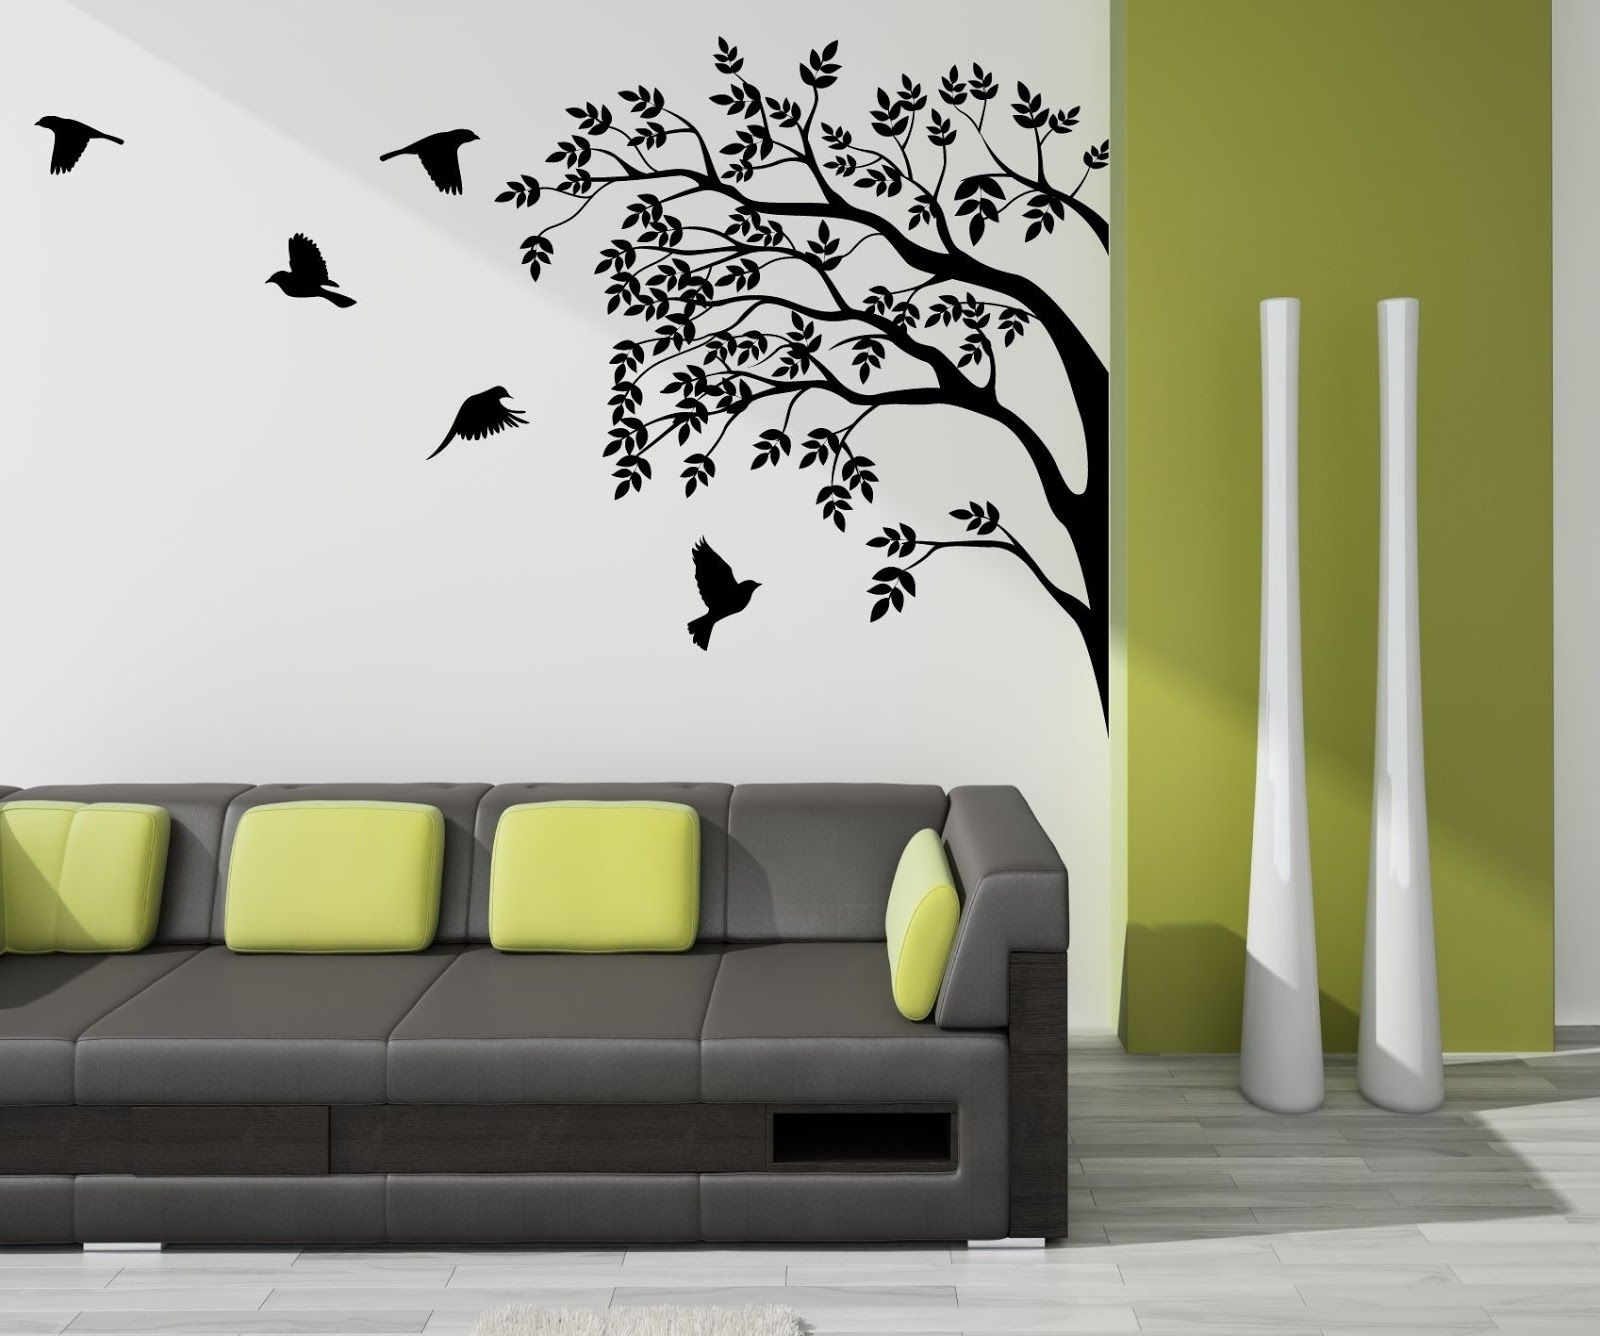 Most Recent Flock Of Birds Wall Art Inside High Resolution Image: Home Design Ideas Wall Designs 1600X (View 10 of 15)